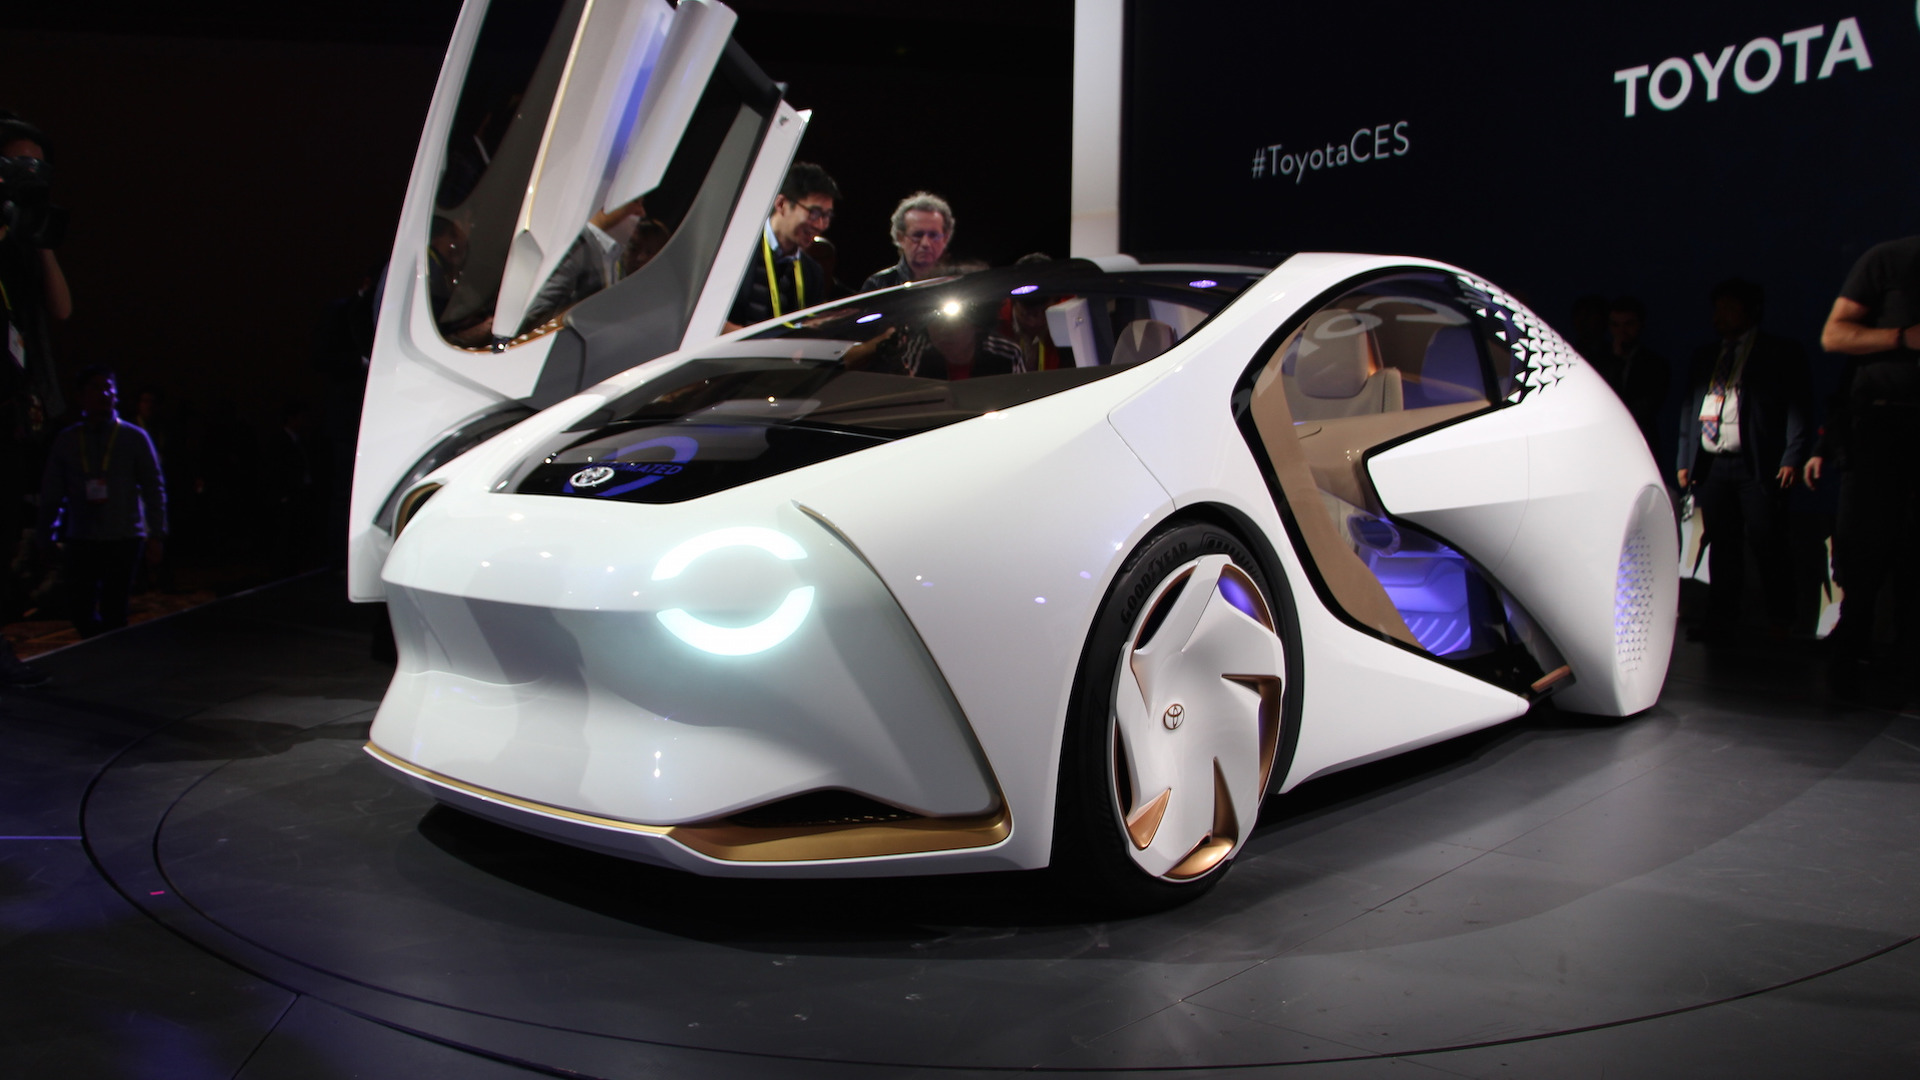 concept cars at CES 2017